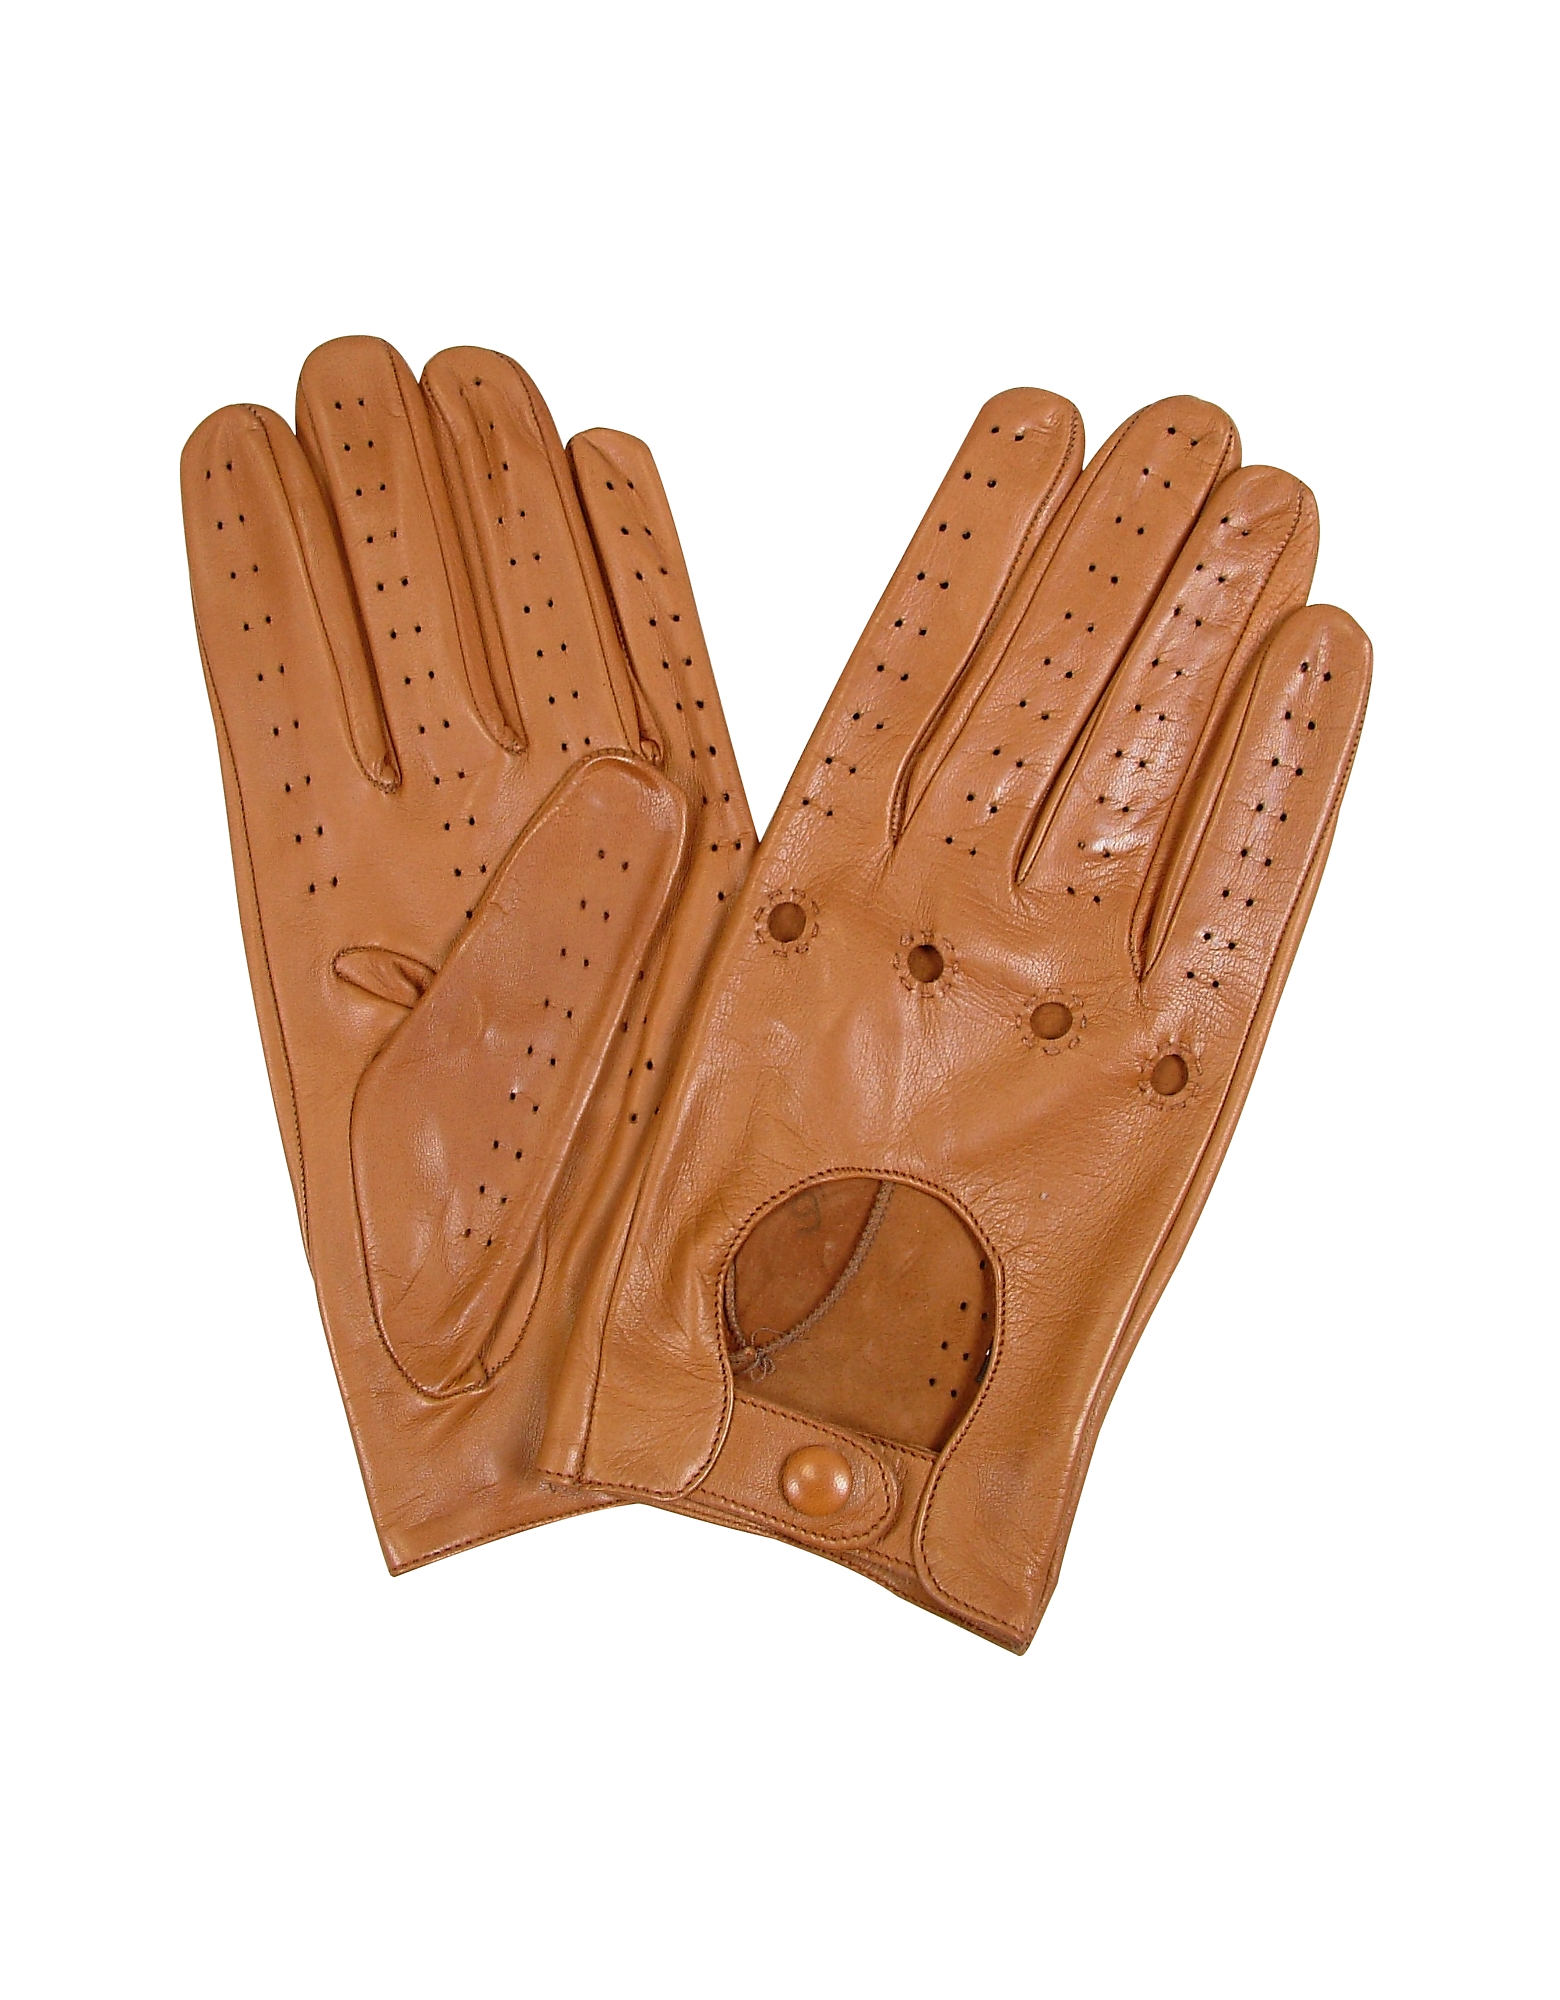 Forzieri Men's Gloves, Men's Tan Italian Leather Driving Gloves